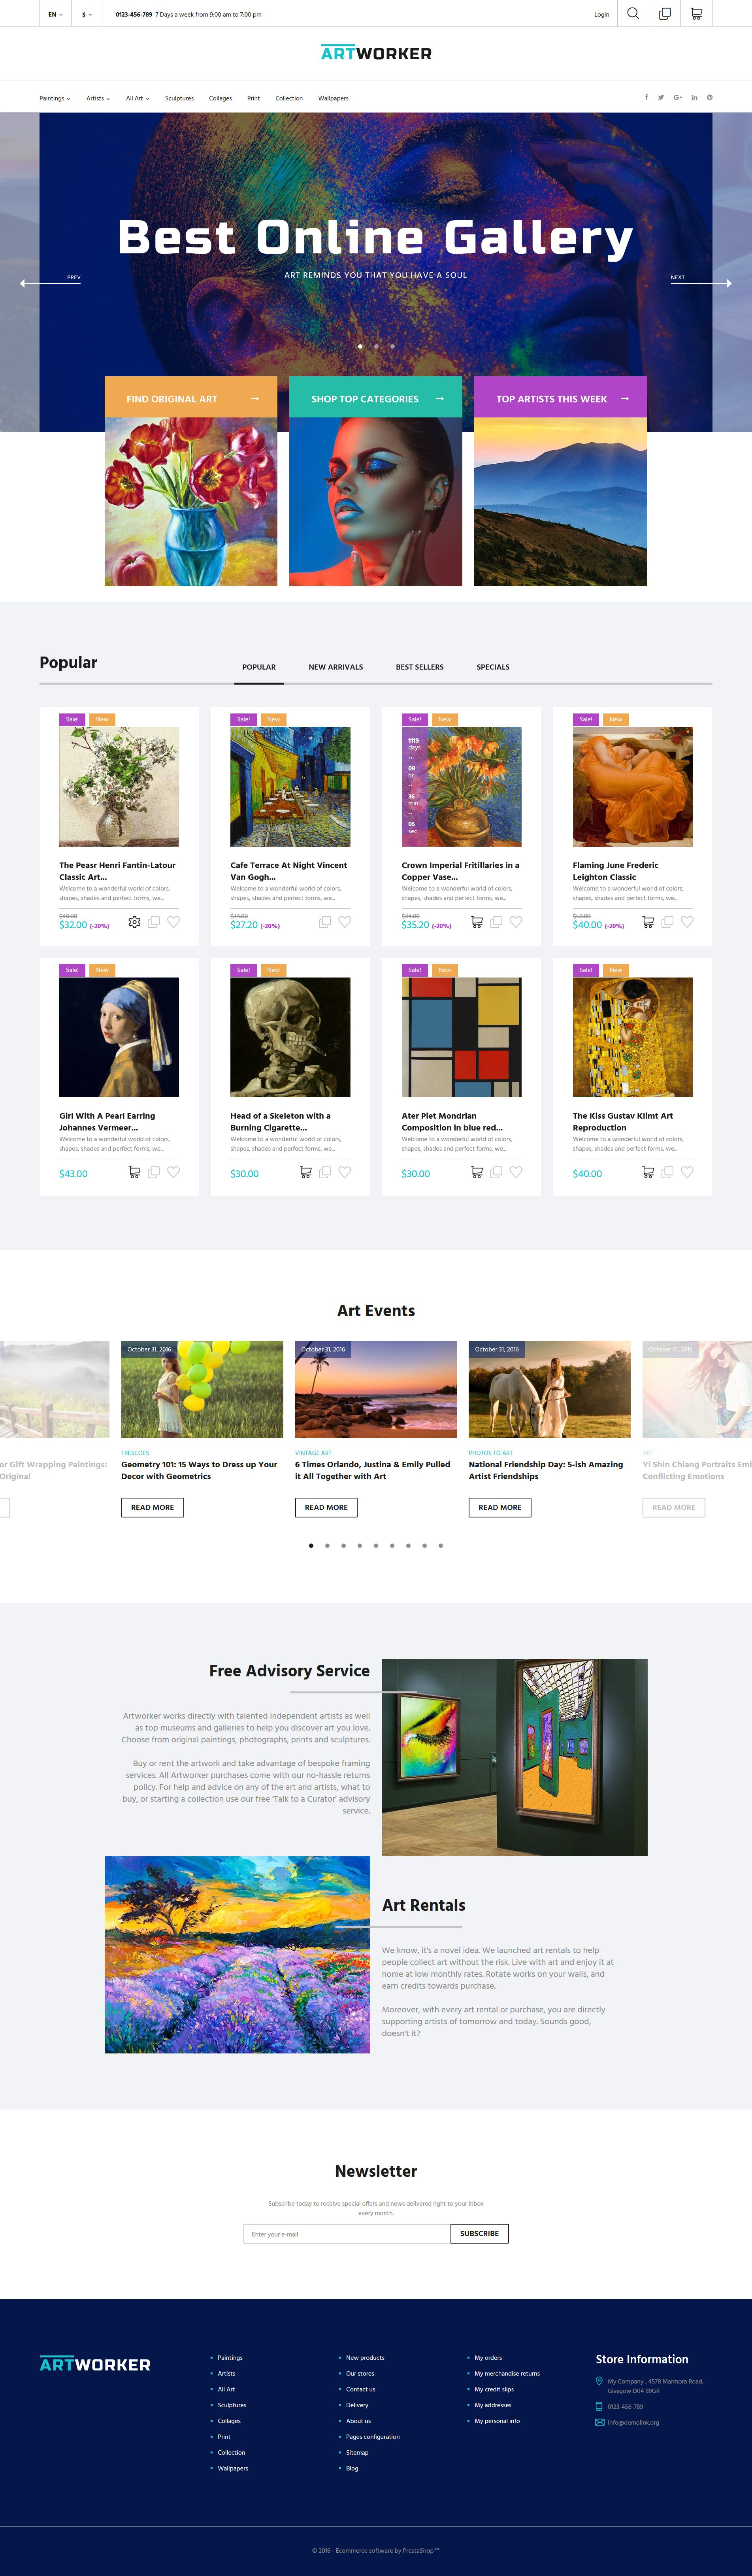 microsoft office portfolio template - online art gallery prestashop theme